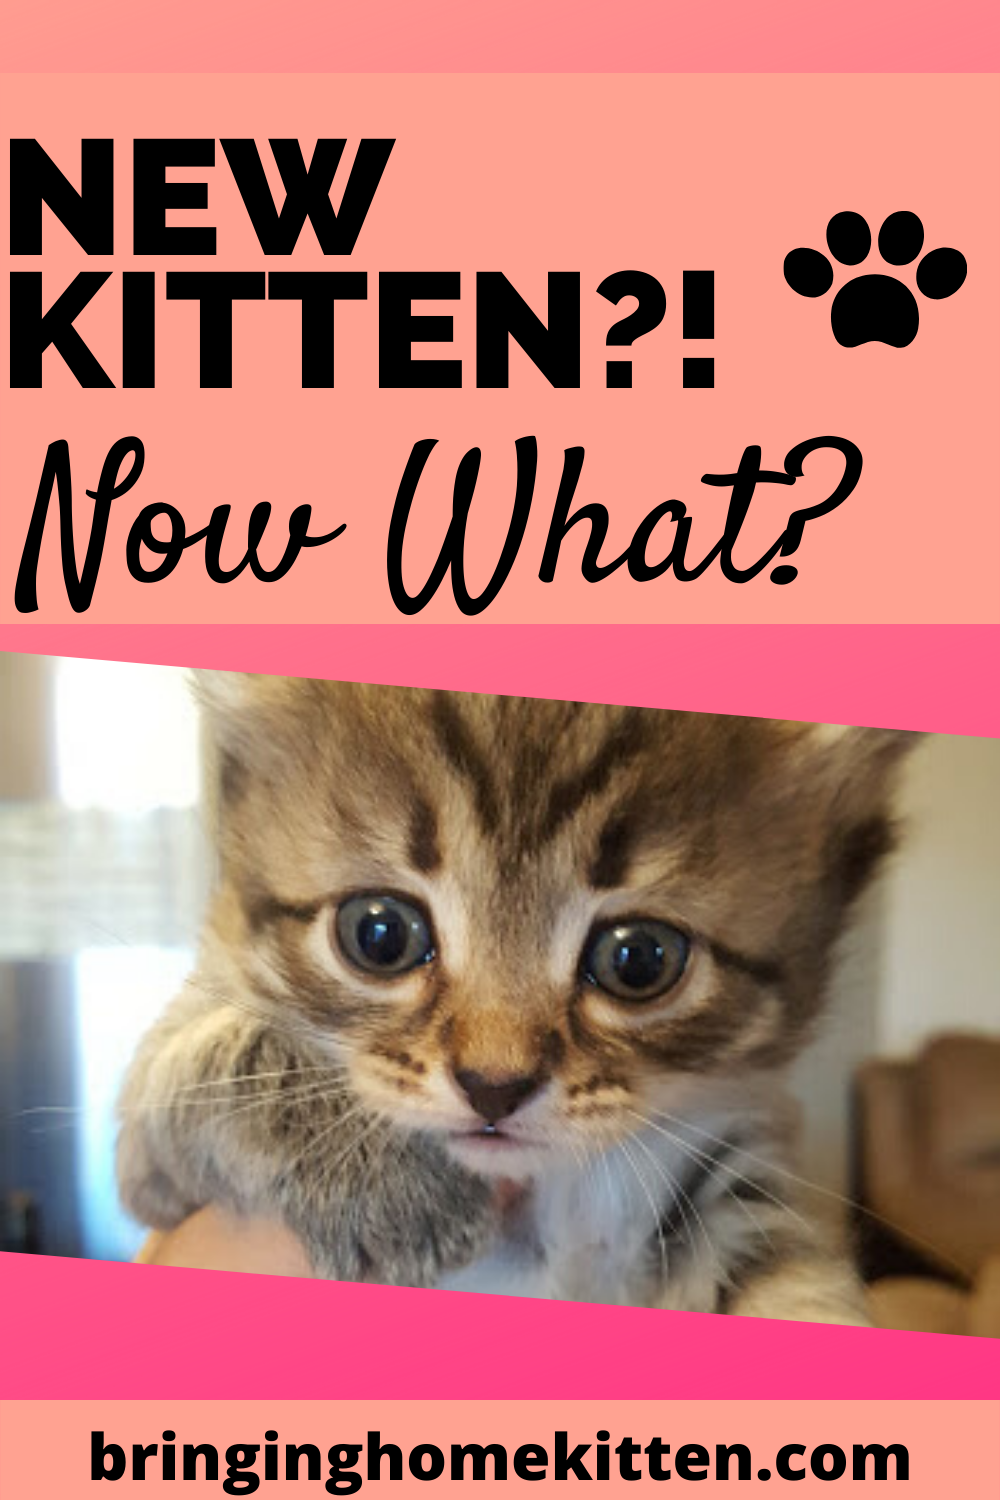 Preparing For A New Kitten In 2020 Getting A Kitten Kitten Cat Mom